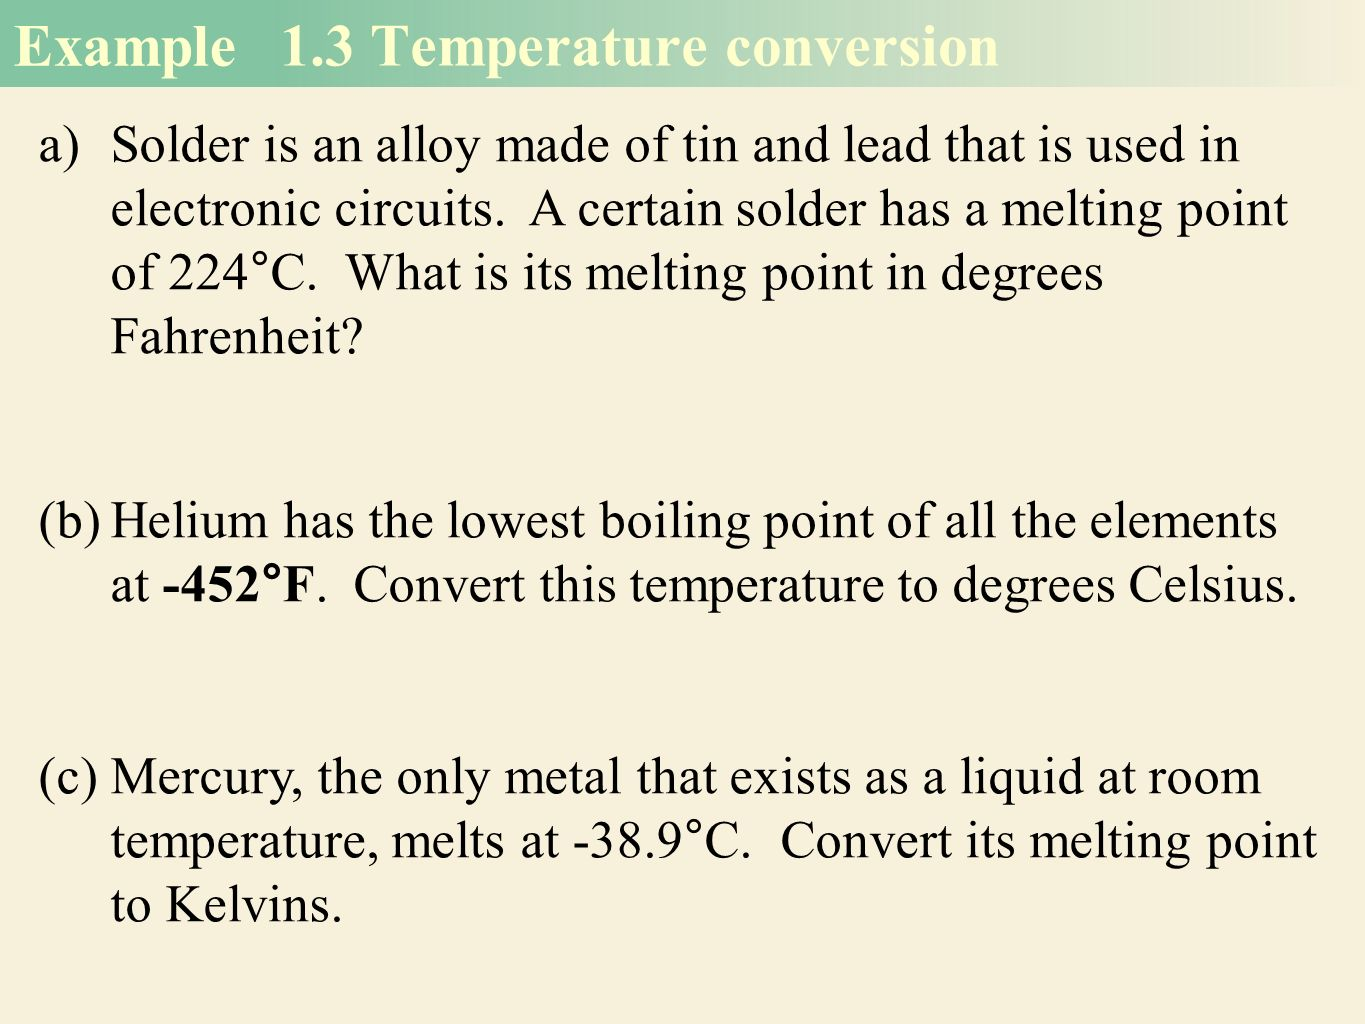 Is Mercury The Only Metal Liquid At Room Temperature